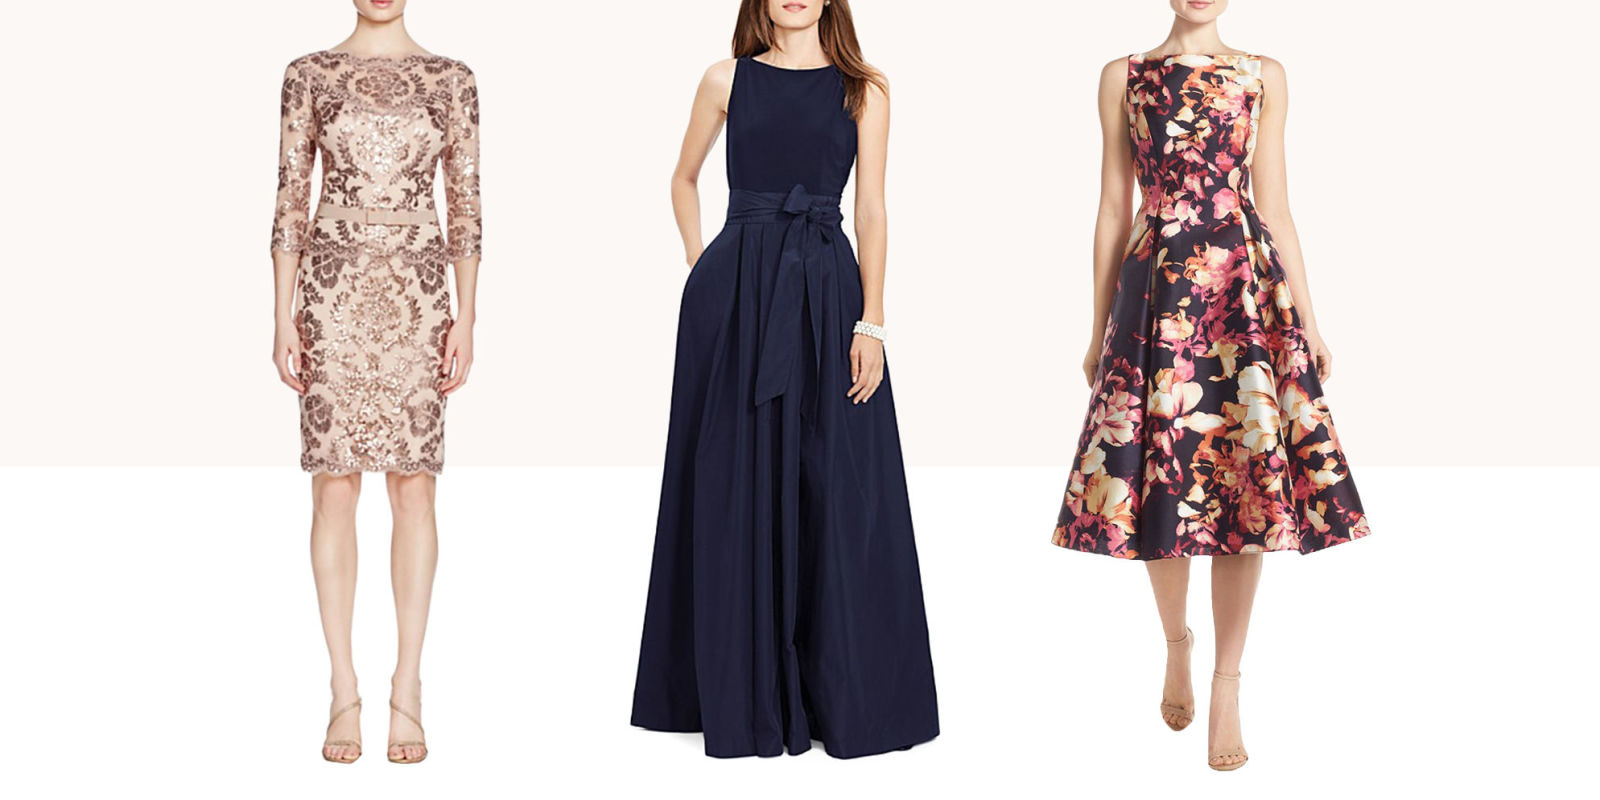 10 Best Mother Of The Bride Dresses 2018